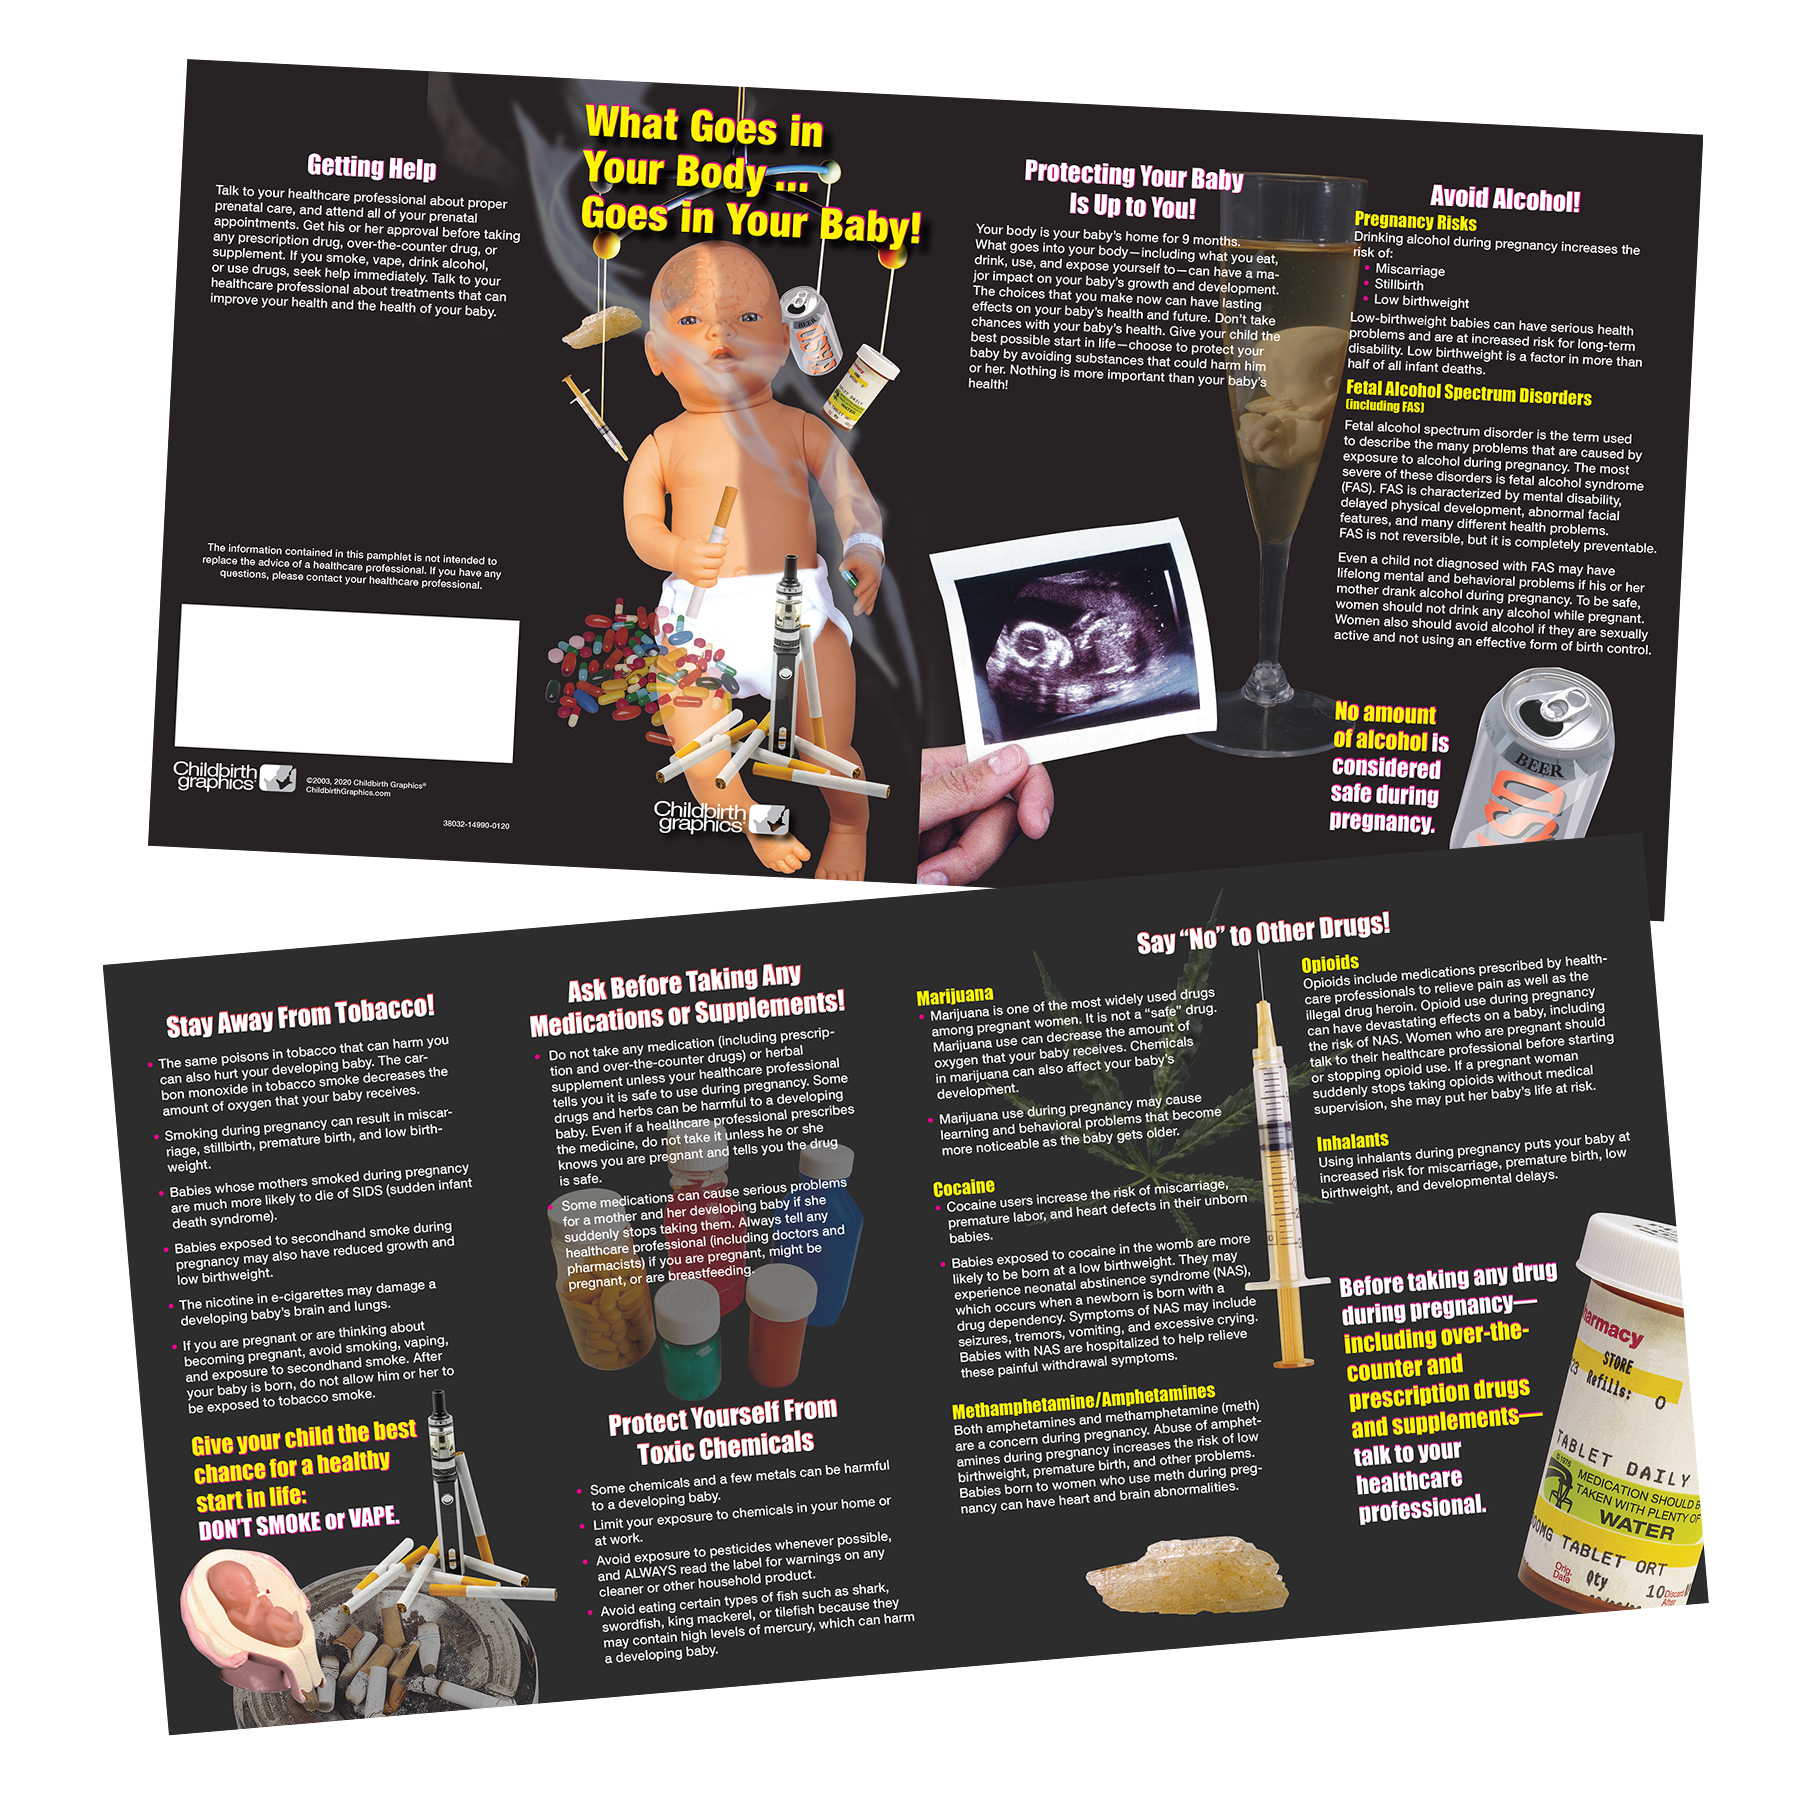 deter pregnant women from using alcohol tobacco drugs and effects on her baby 8-panel pamphlet, front and back pamphlet view Childbirth Graphicss, 38032